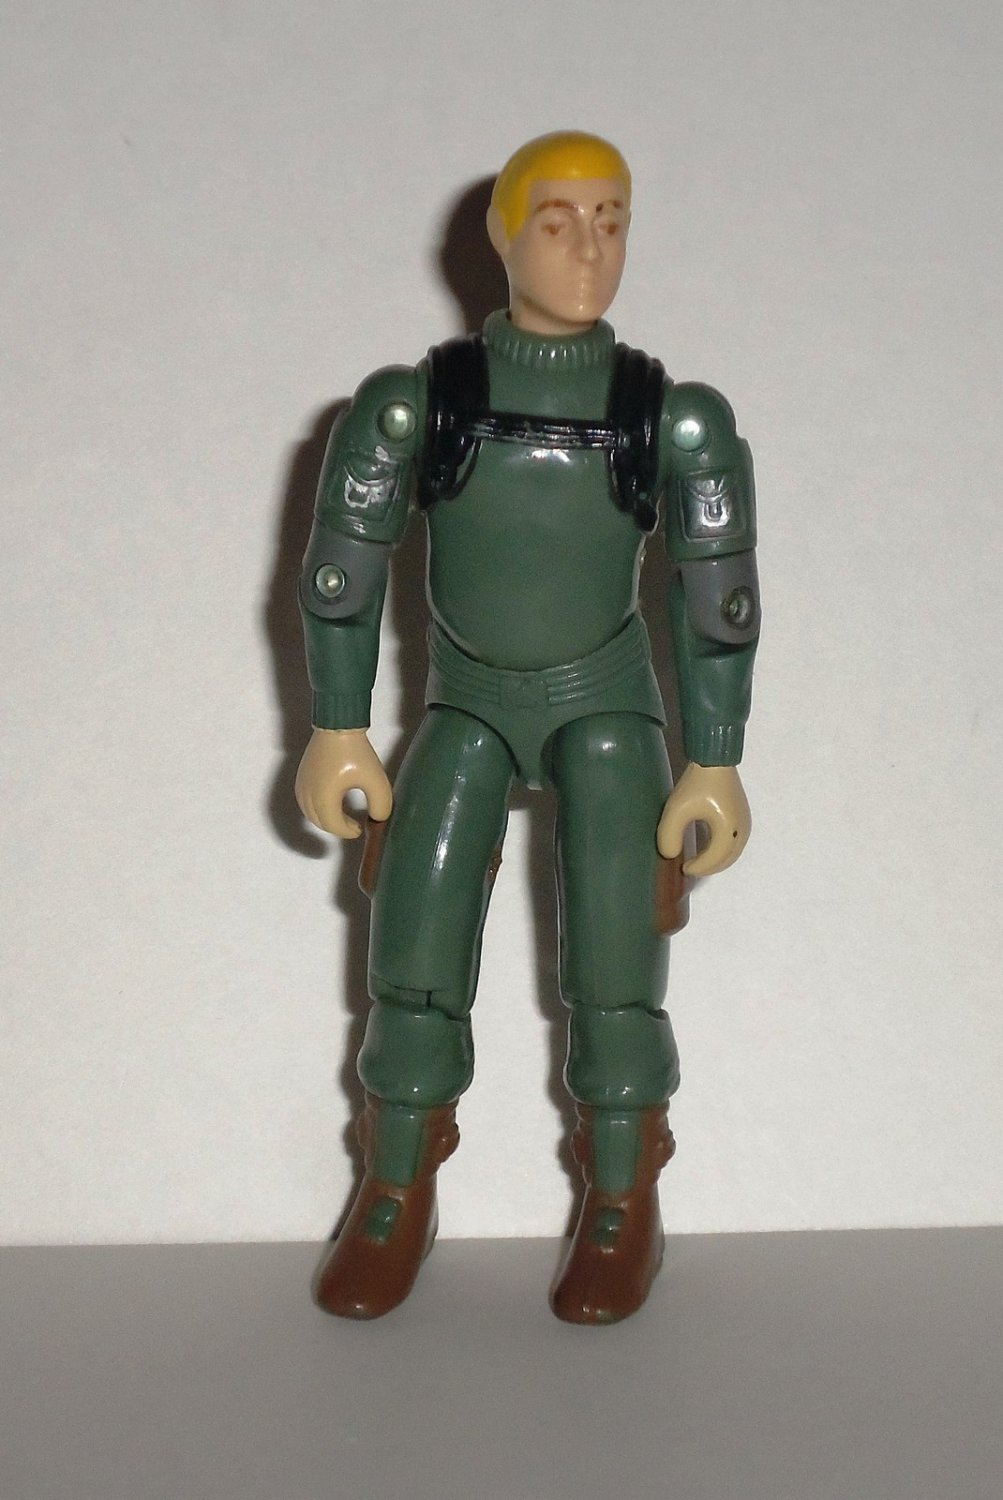 G.I. Joe 1983 Series 2 Short-Fuze Version 1.5 Action ...